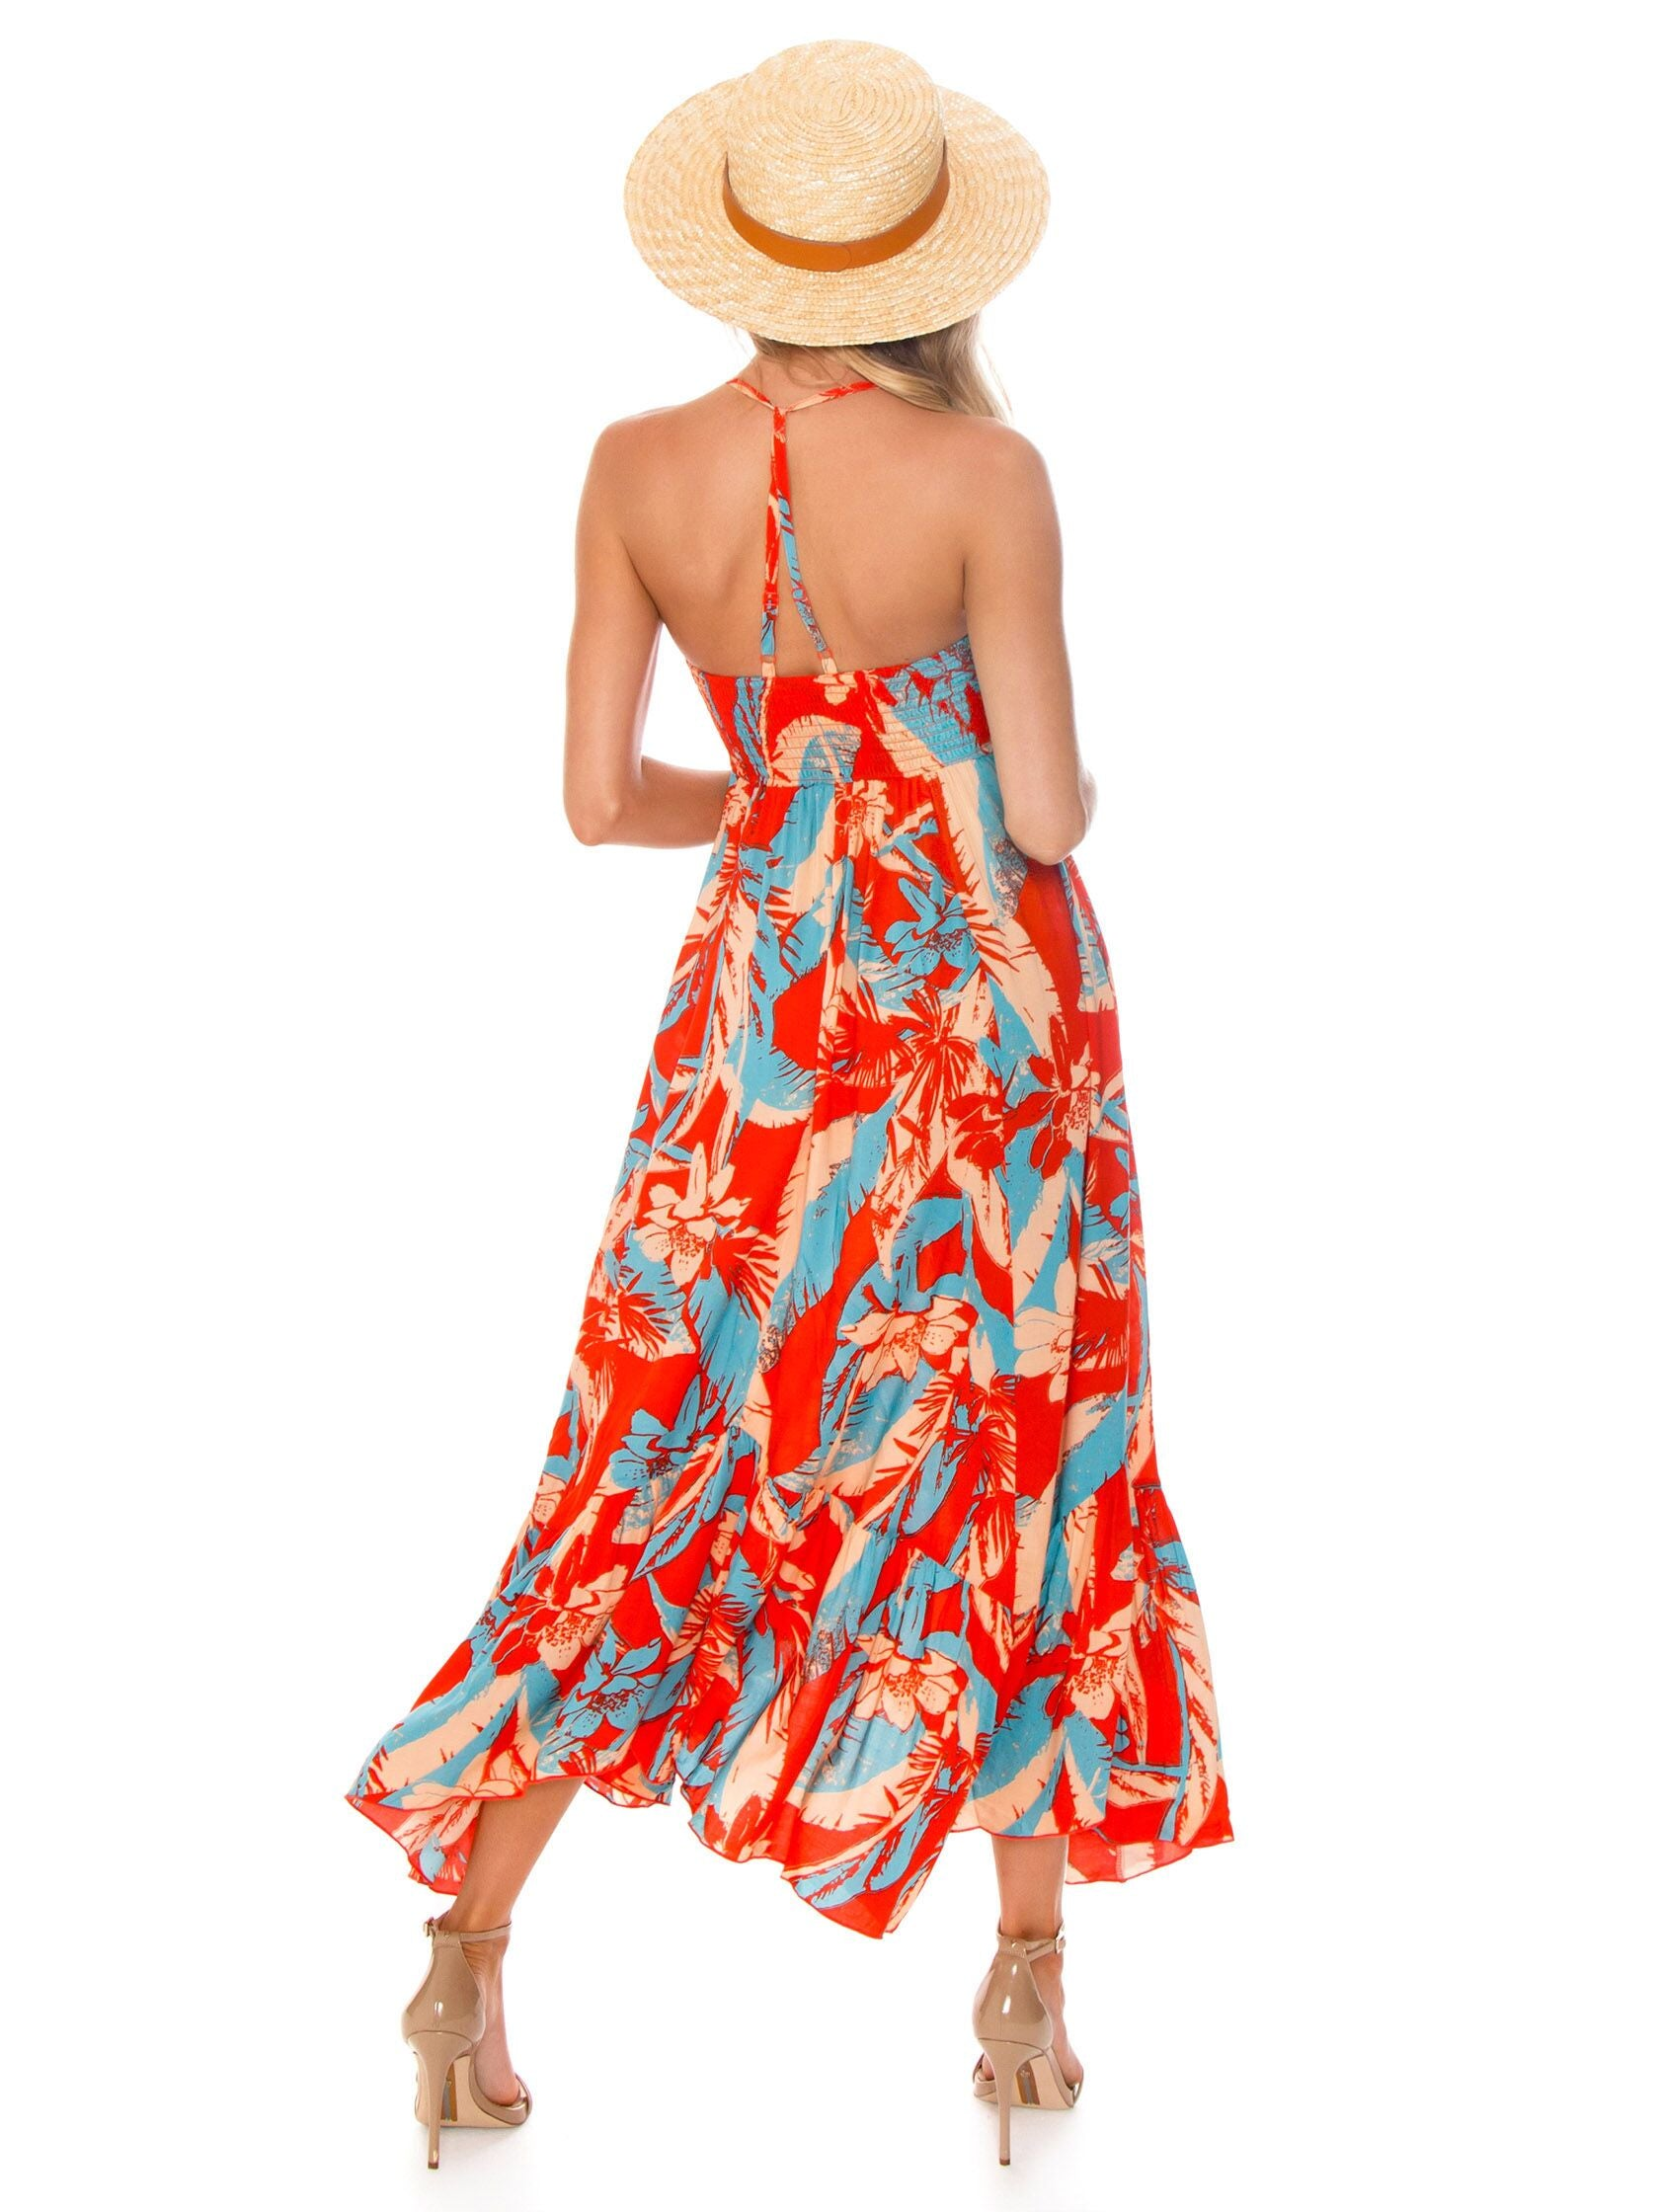 Women wearing a dress rental from Free People called Heat Wave Printed Maxi